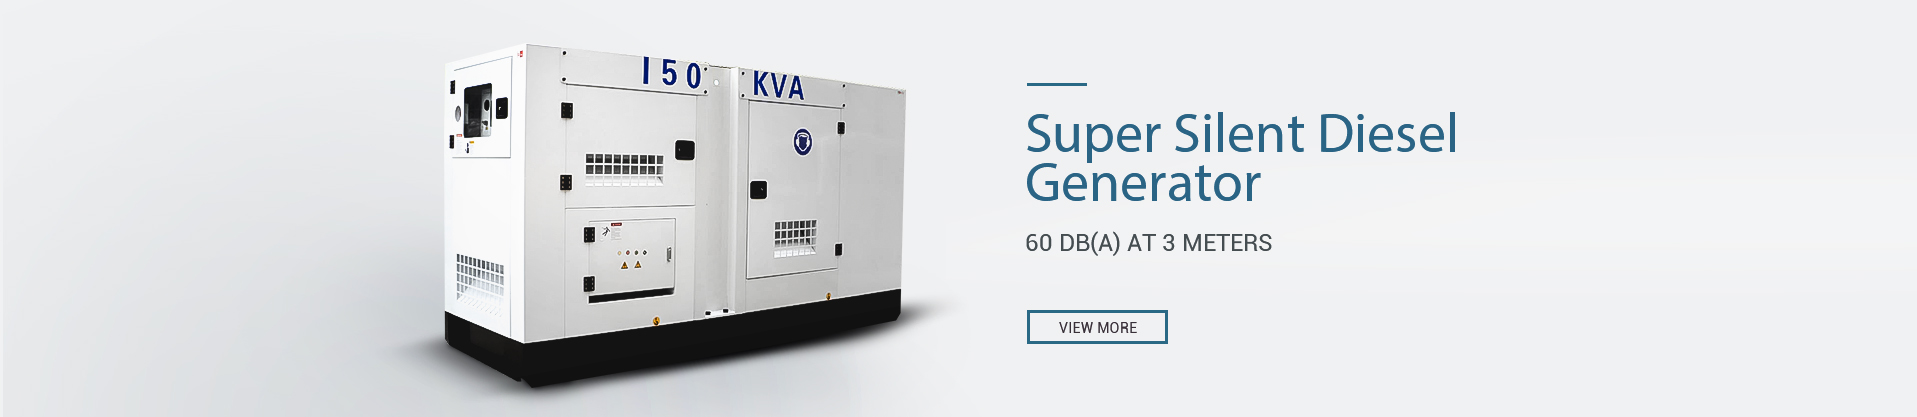 Guangzhou Generator Supplier